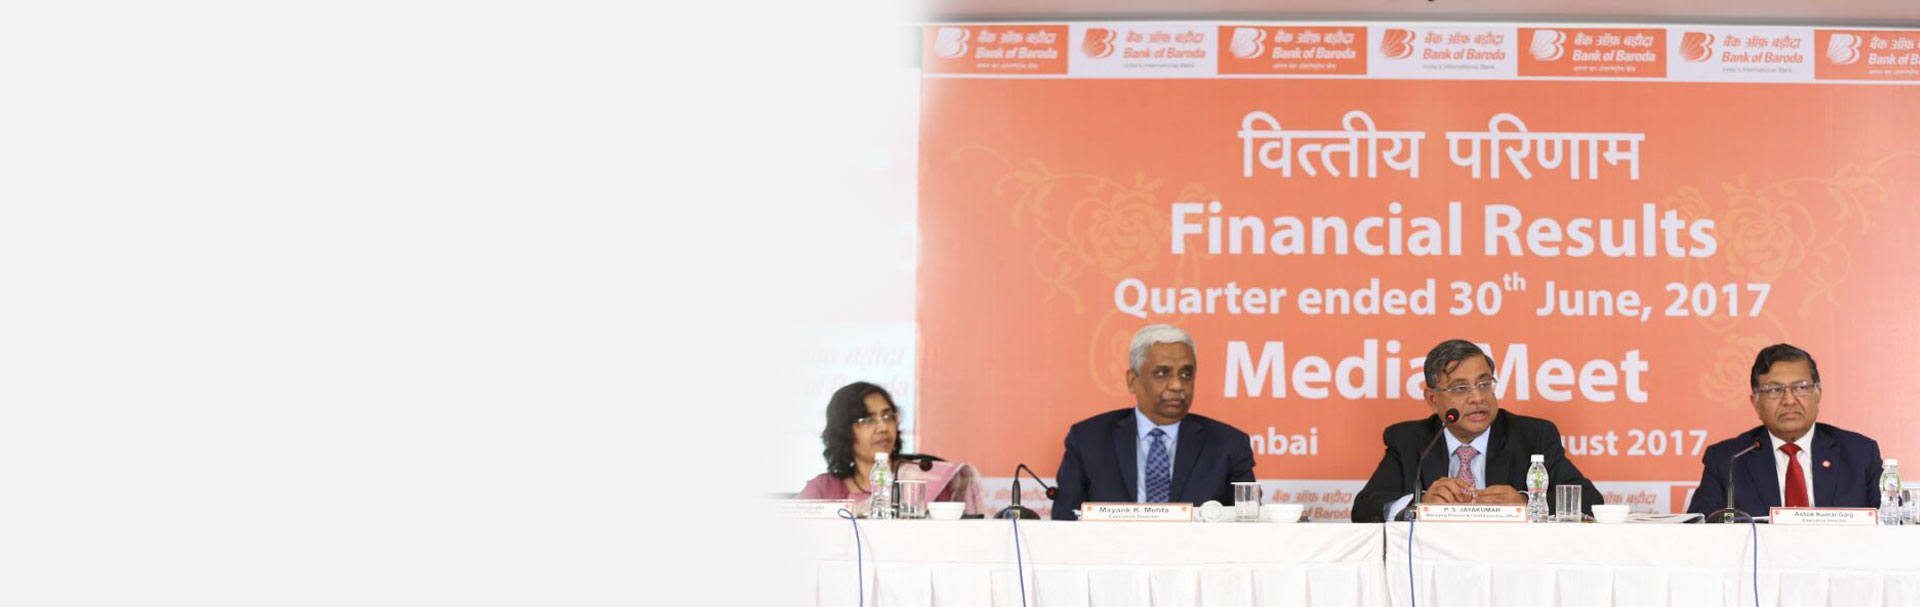 Shri P.S. Jayakumar, (MD & CEO) and Executive Directors Shri. Mayank K Mehta, Shri. A.K. Garg & Smt. Papia Sengupta are seen addressing the media during the announcement of Bank's Financial Results for Q1 FY 17-18